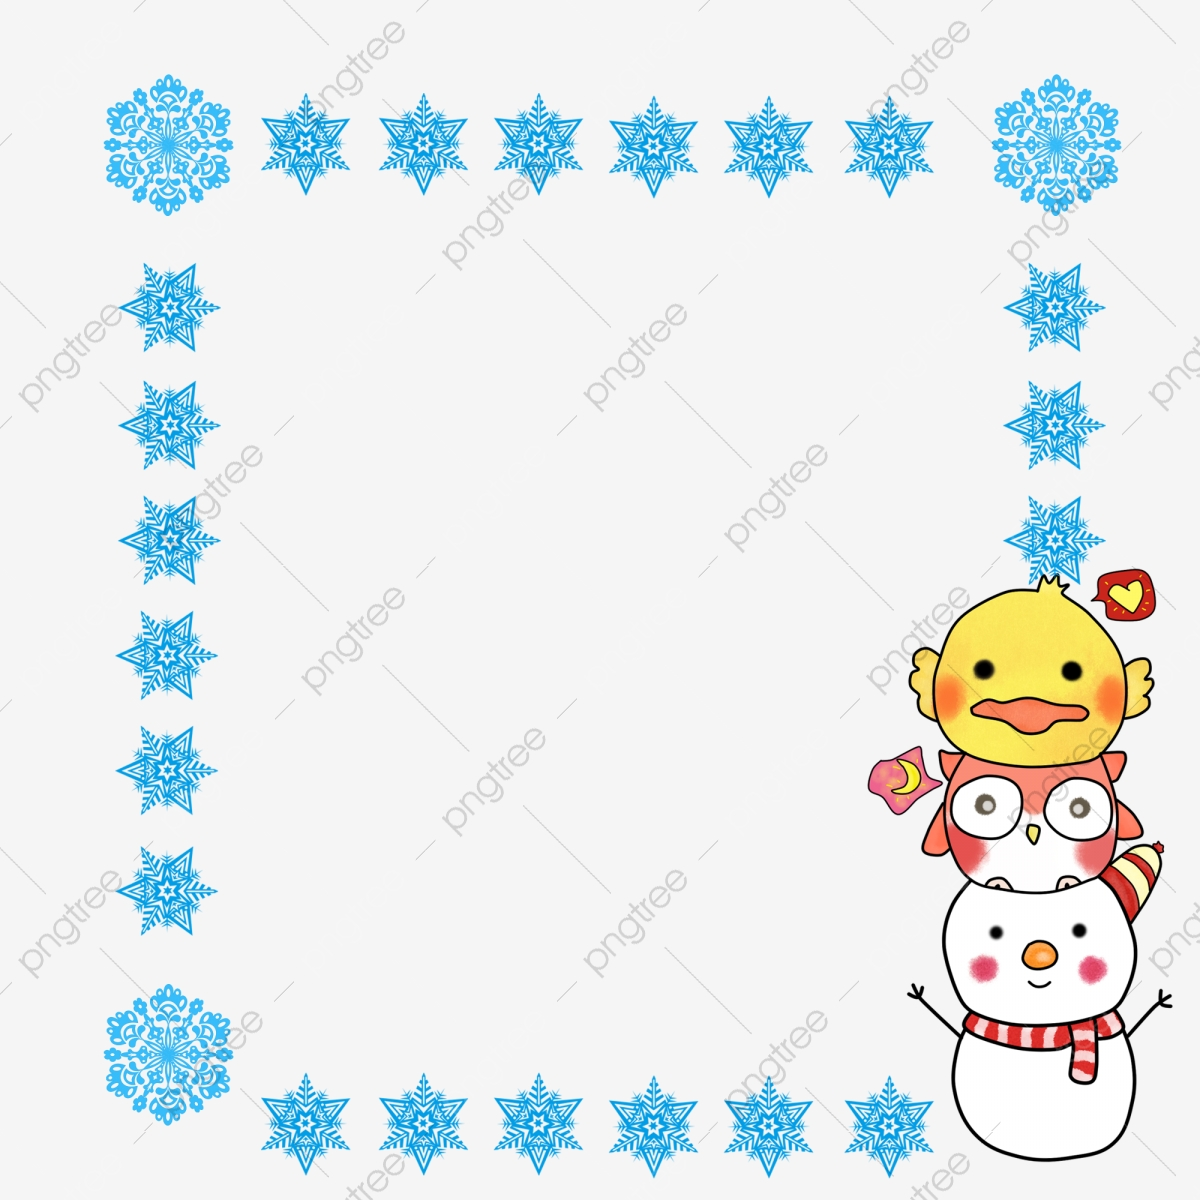 graphic black and white library Clipart snowflake border. Christmas frame snowman owl